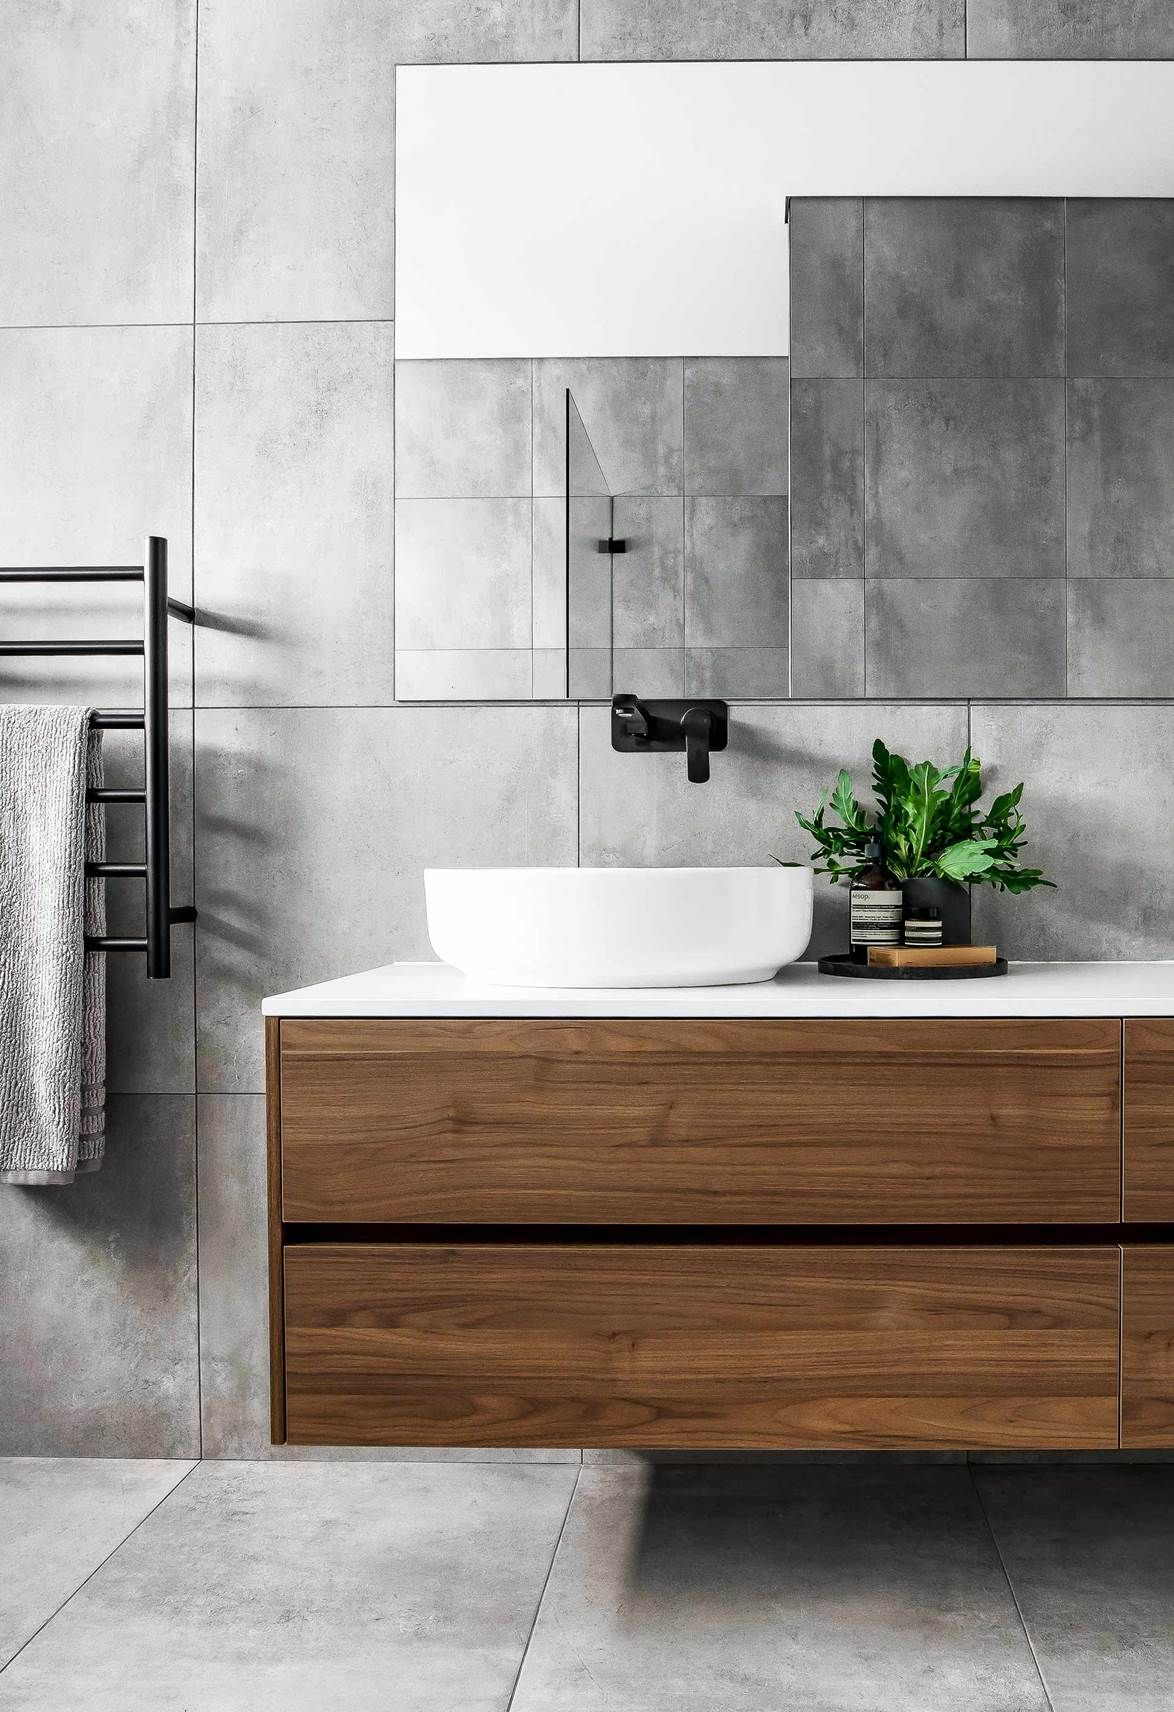 24 modern bathroom ideas that are perfect for any home